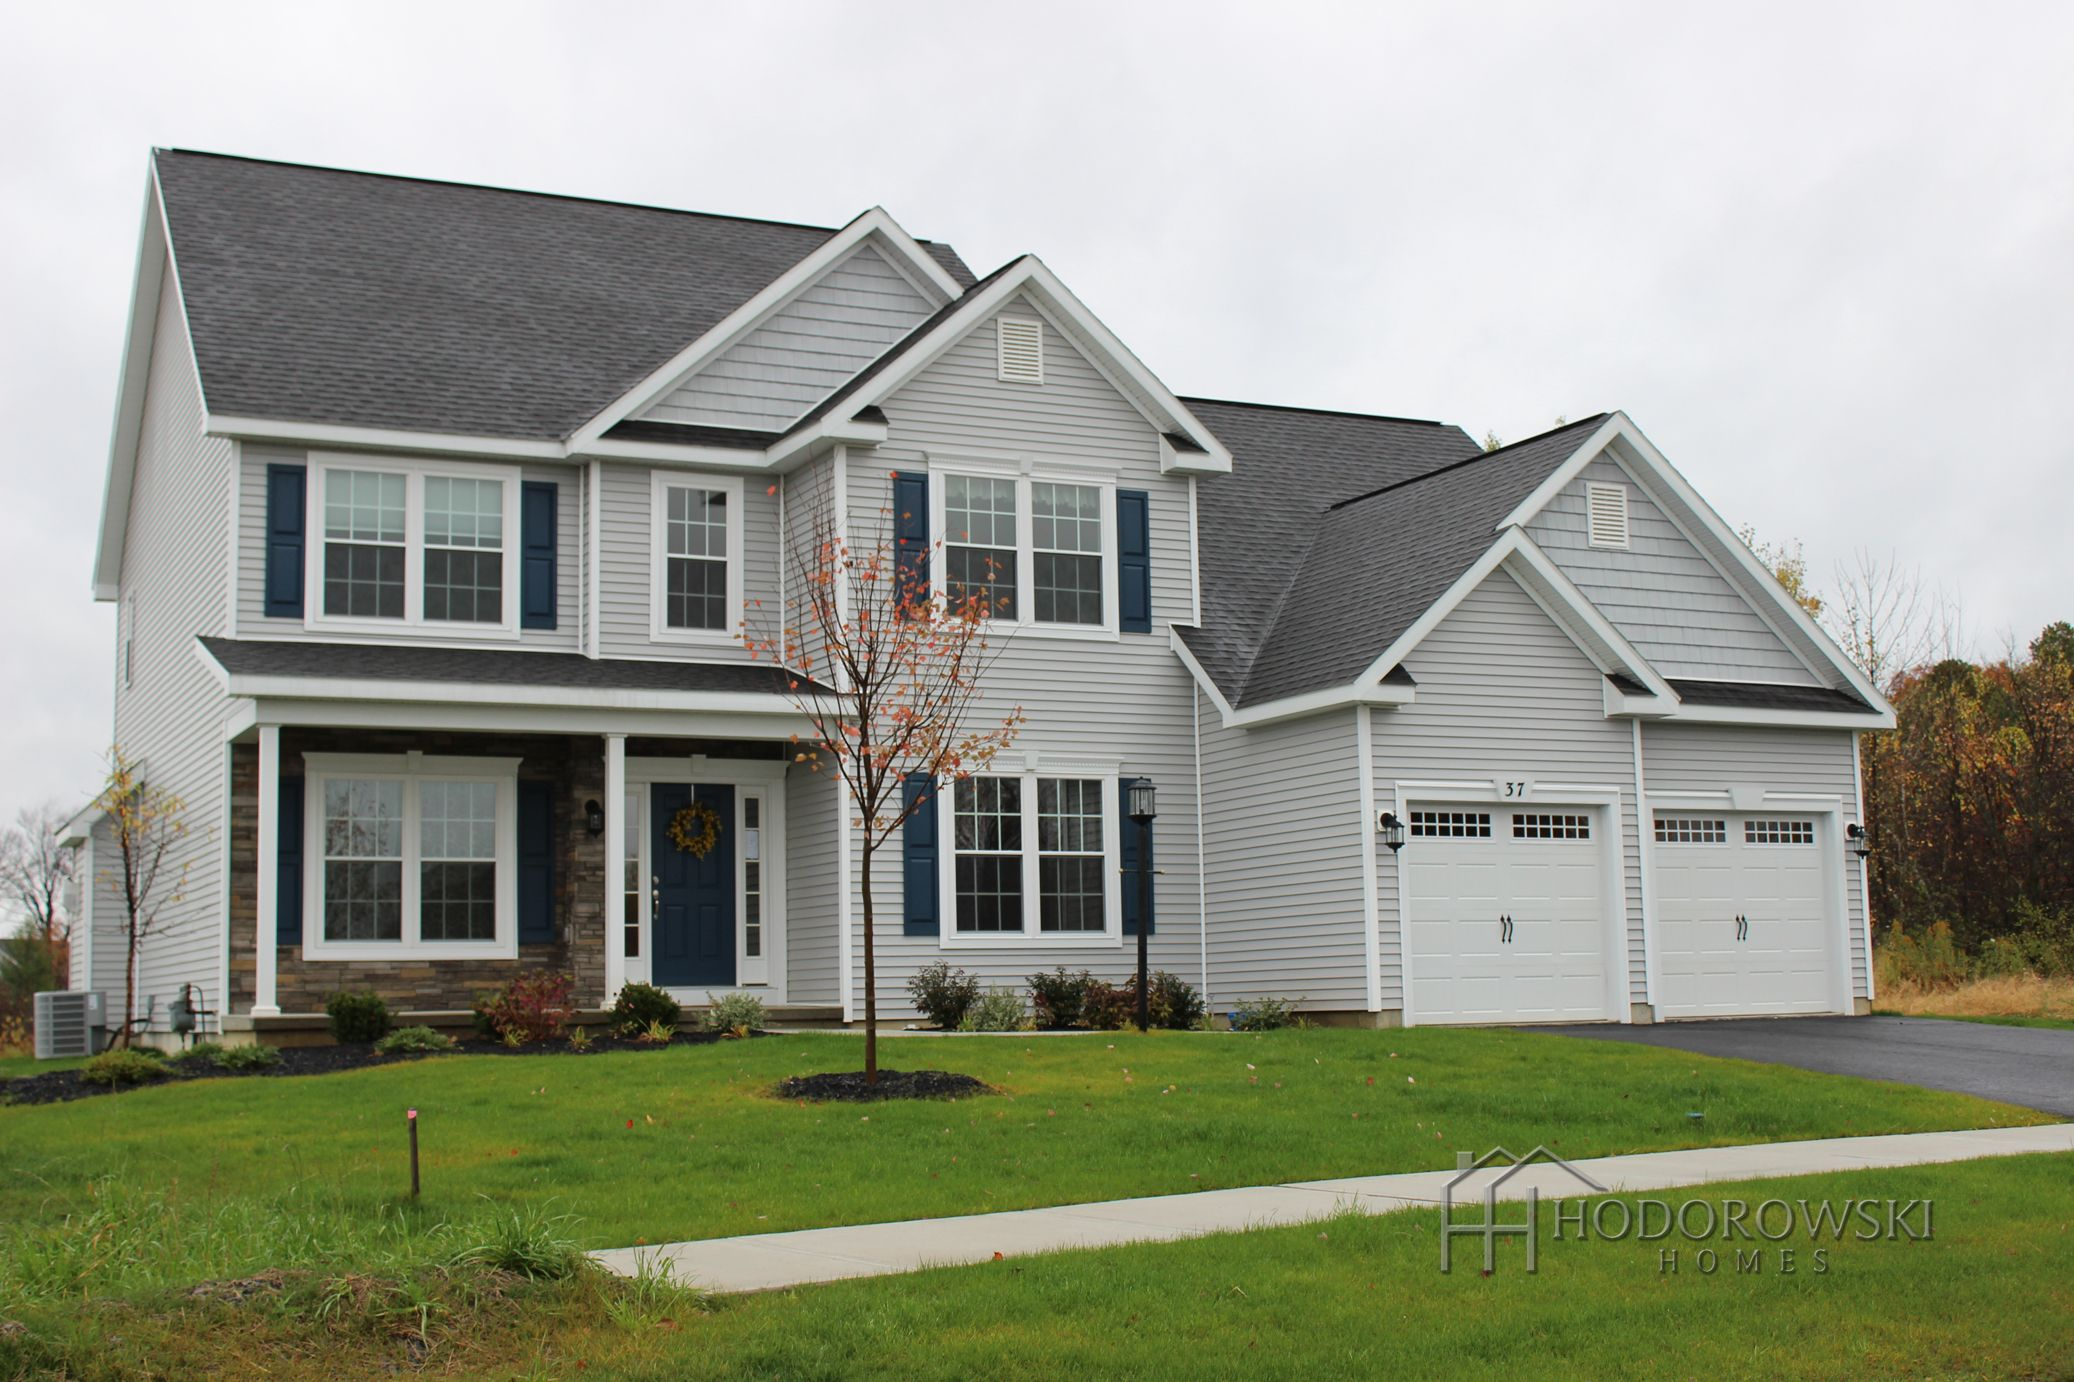 This Saratoga B Model House Chose Harbor Stone Siding And Shakes Classic Blue Shutters And Colonial House Exteriors Exterior House Remodel Pretty House